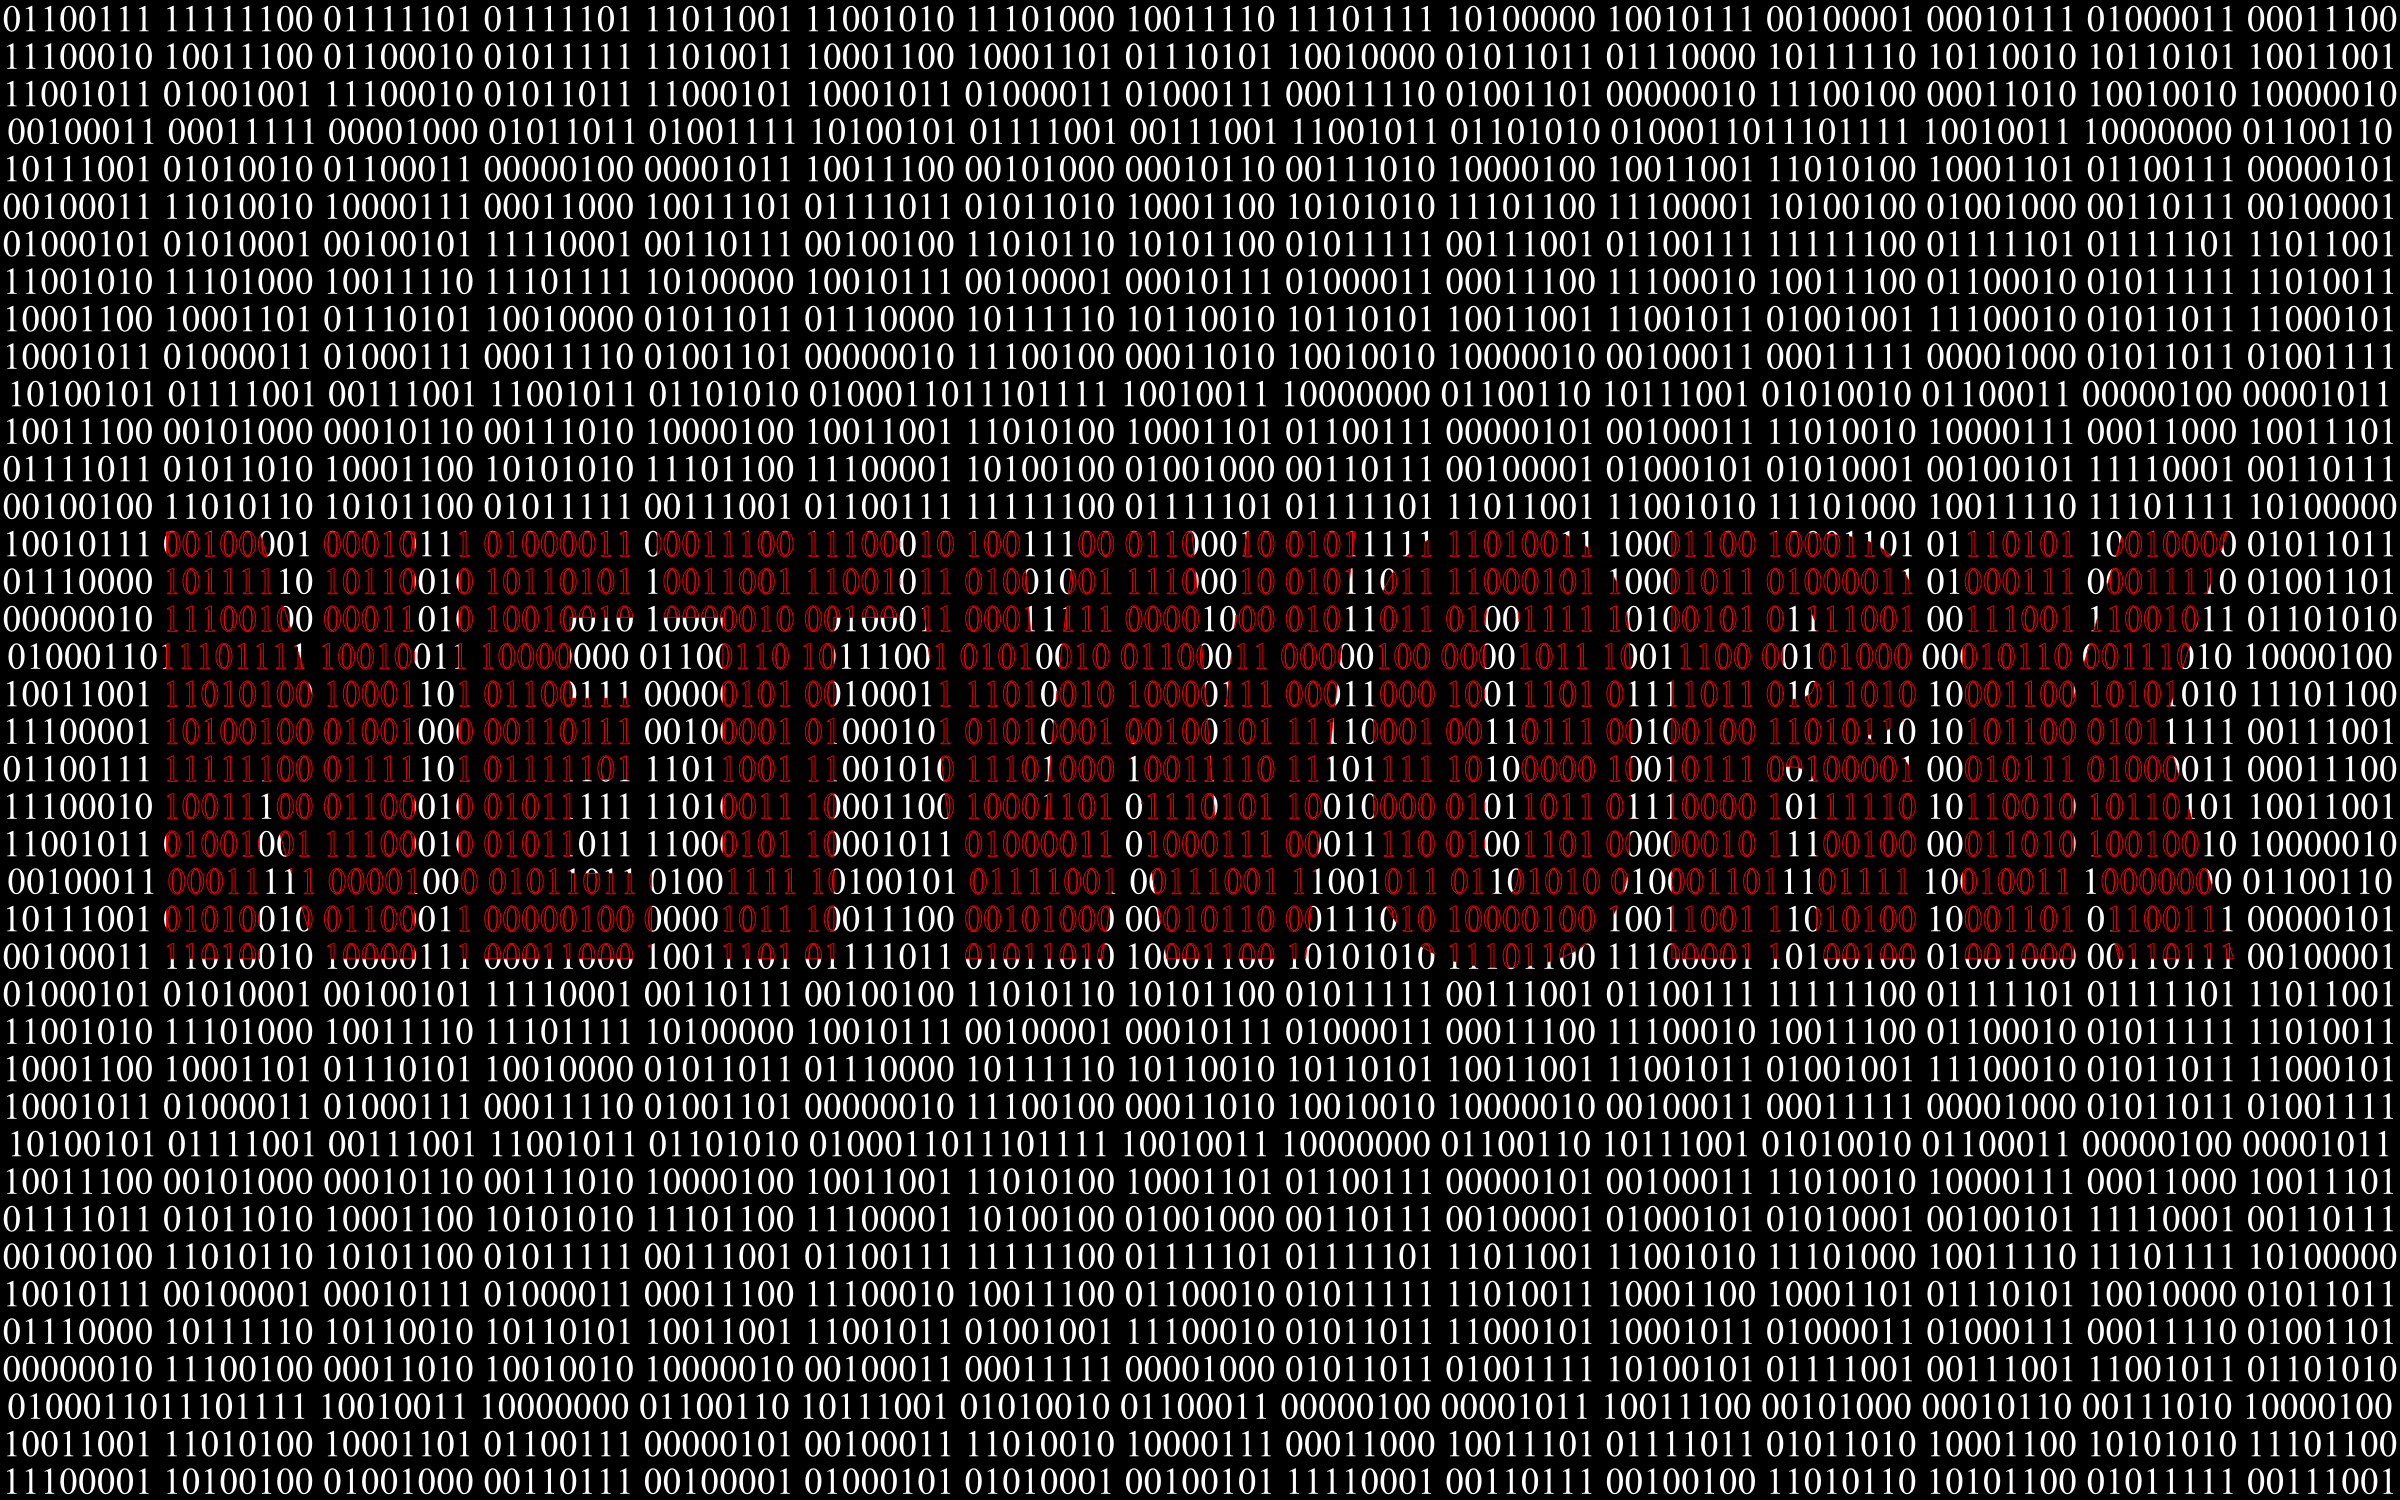 Binary Network by GDJ